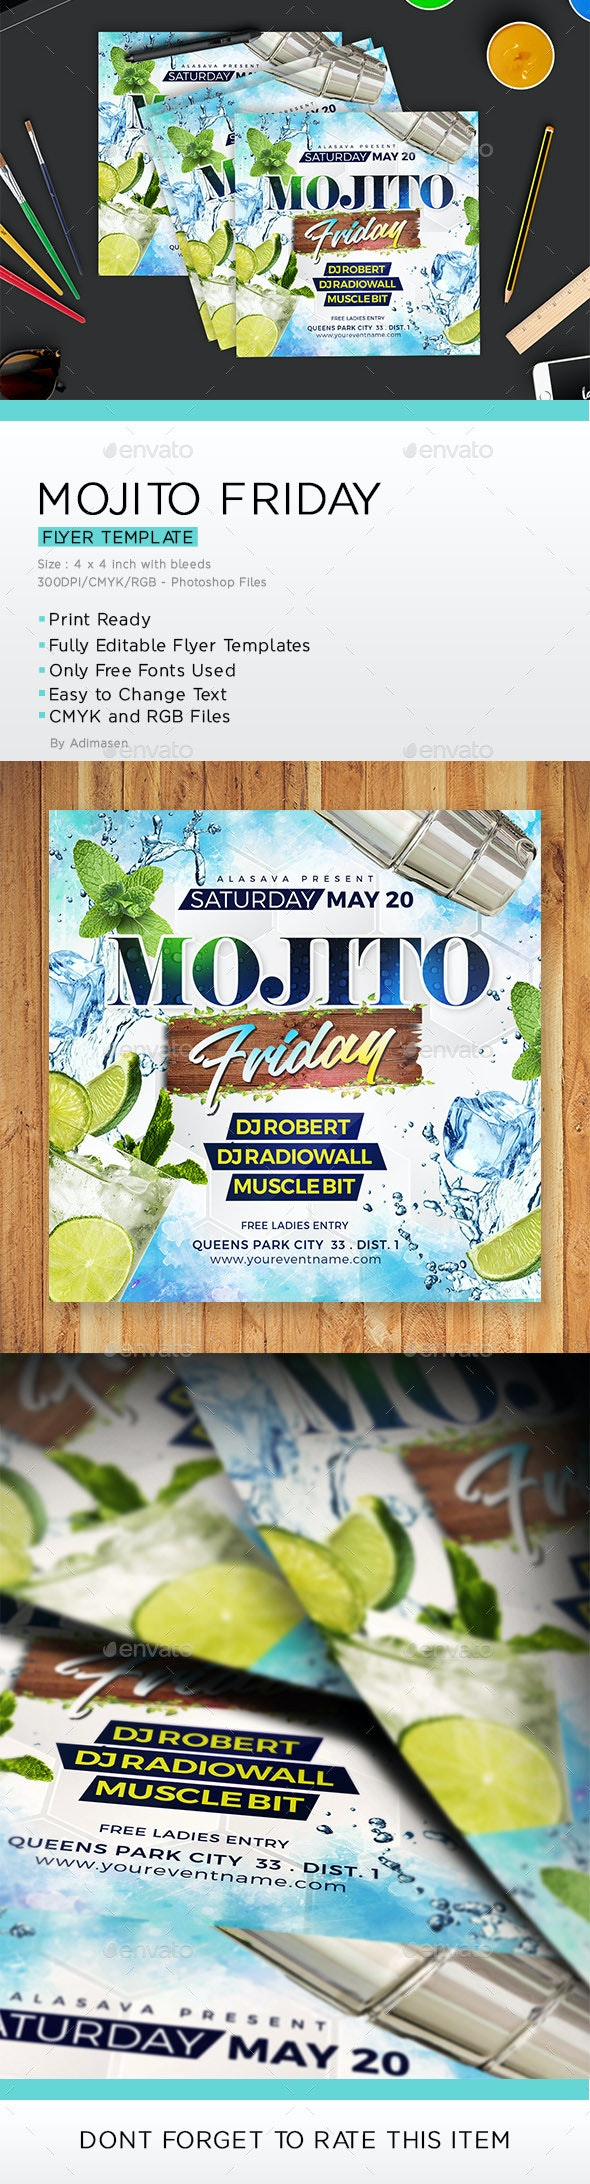 Mojito Friday Flyer - Events Flyers